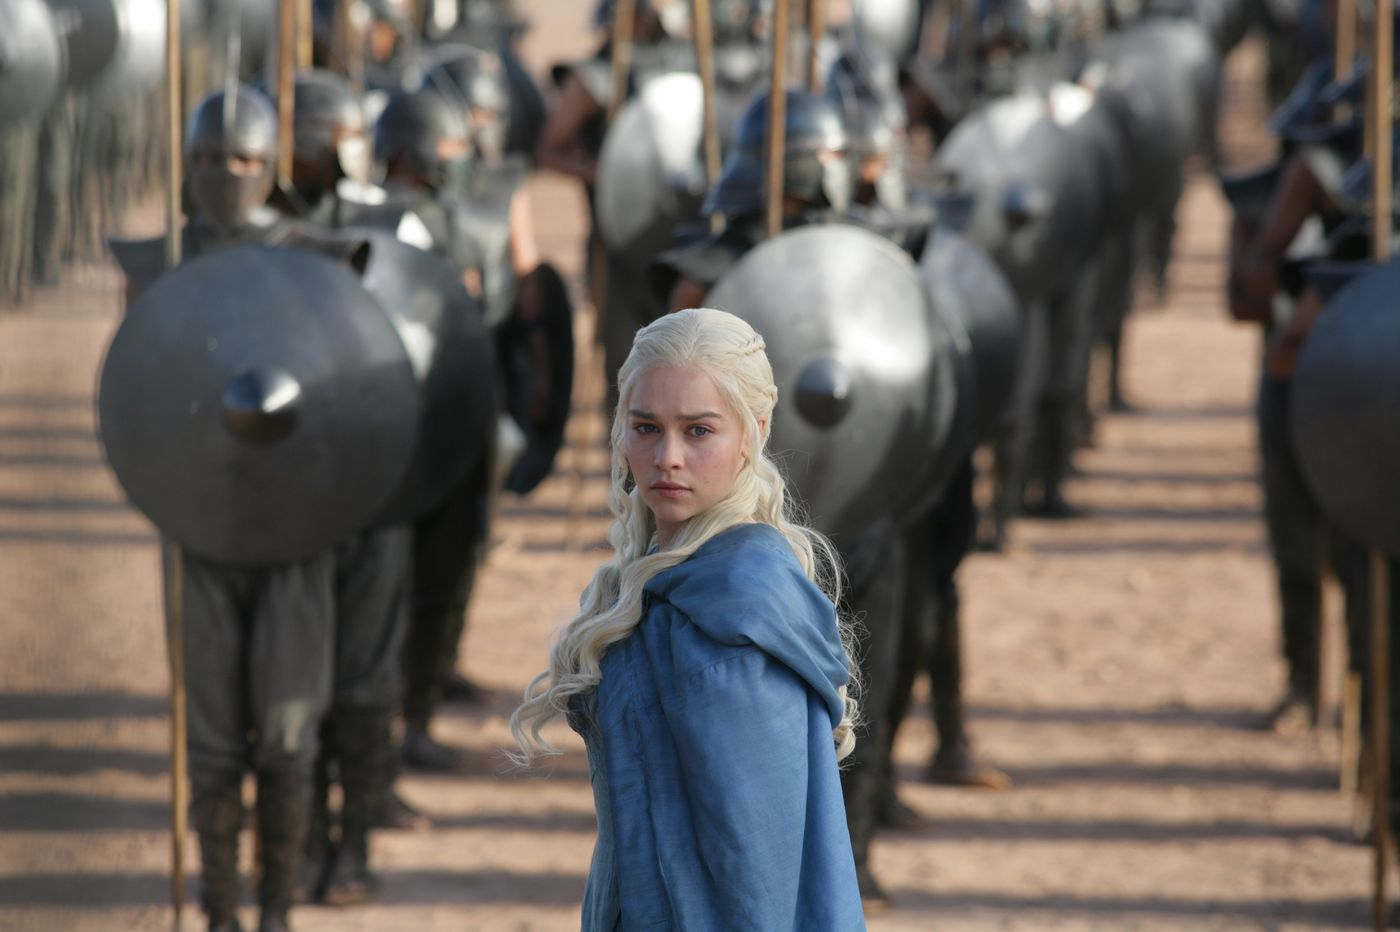 See 'Game of Thrones' Season 8 premiere at free watch parties around Philly